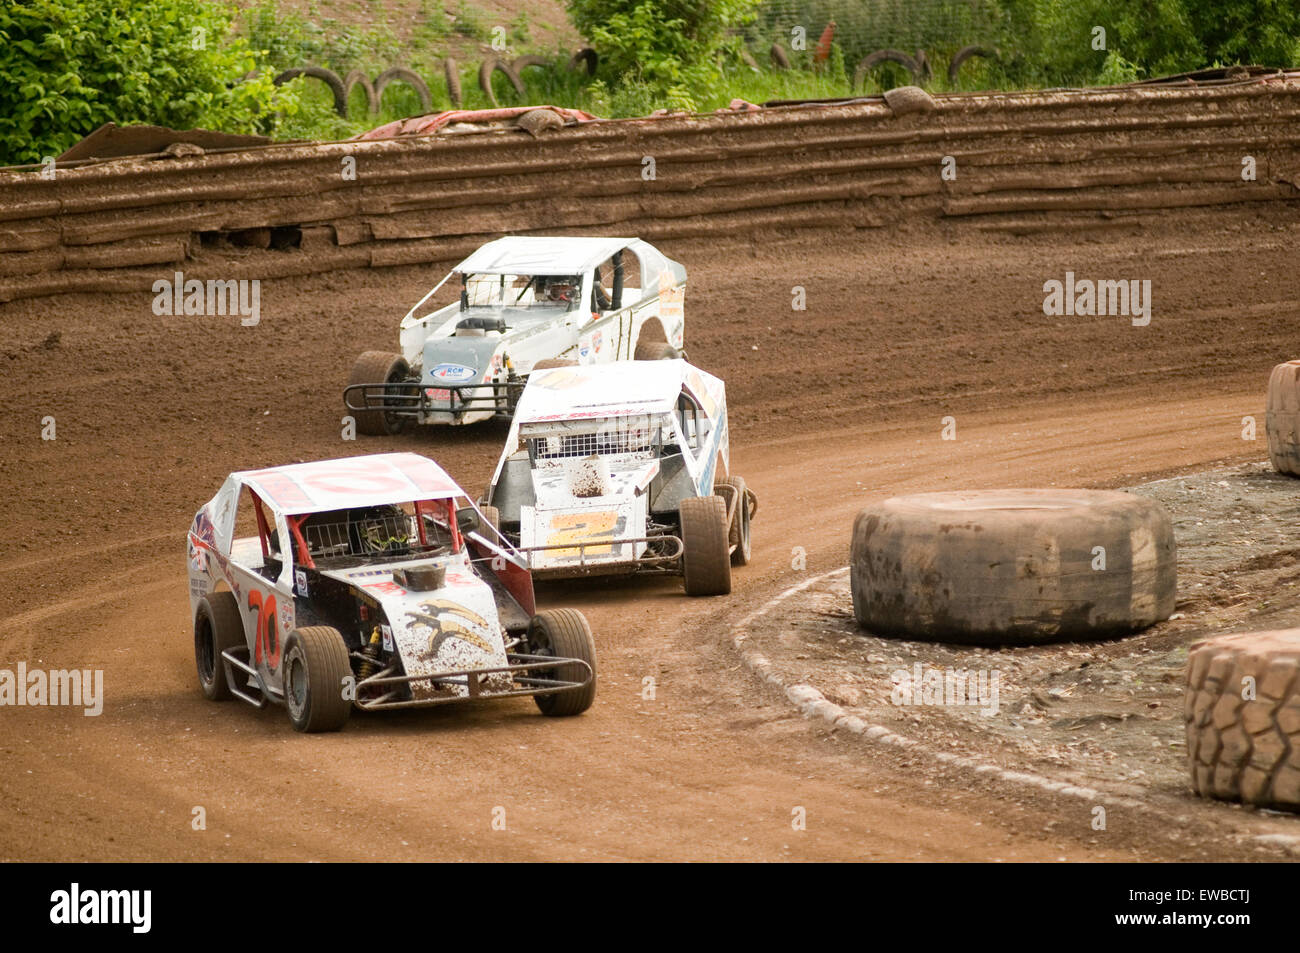 Modified Cars Stock Photos & Modified Cars Stock Images - Alamy